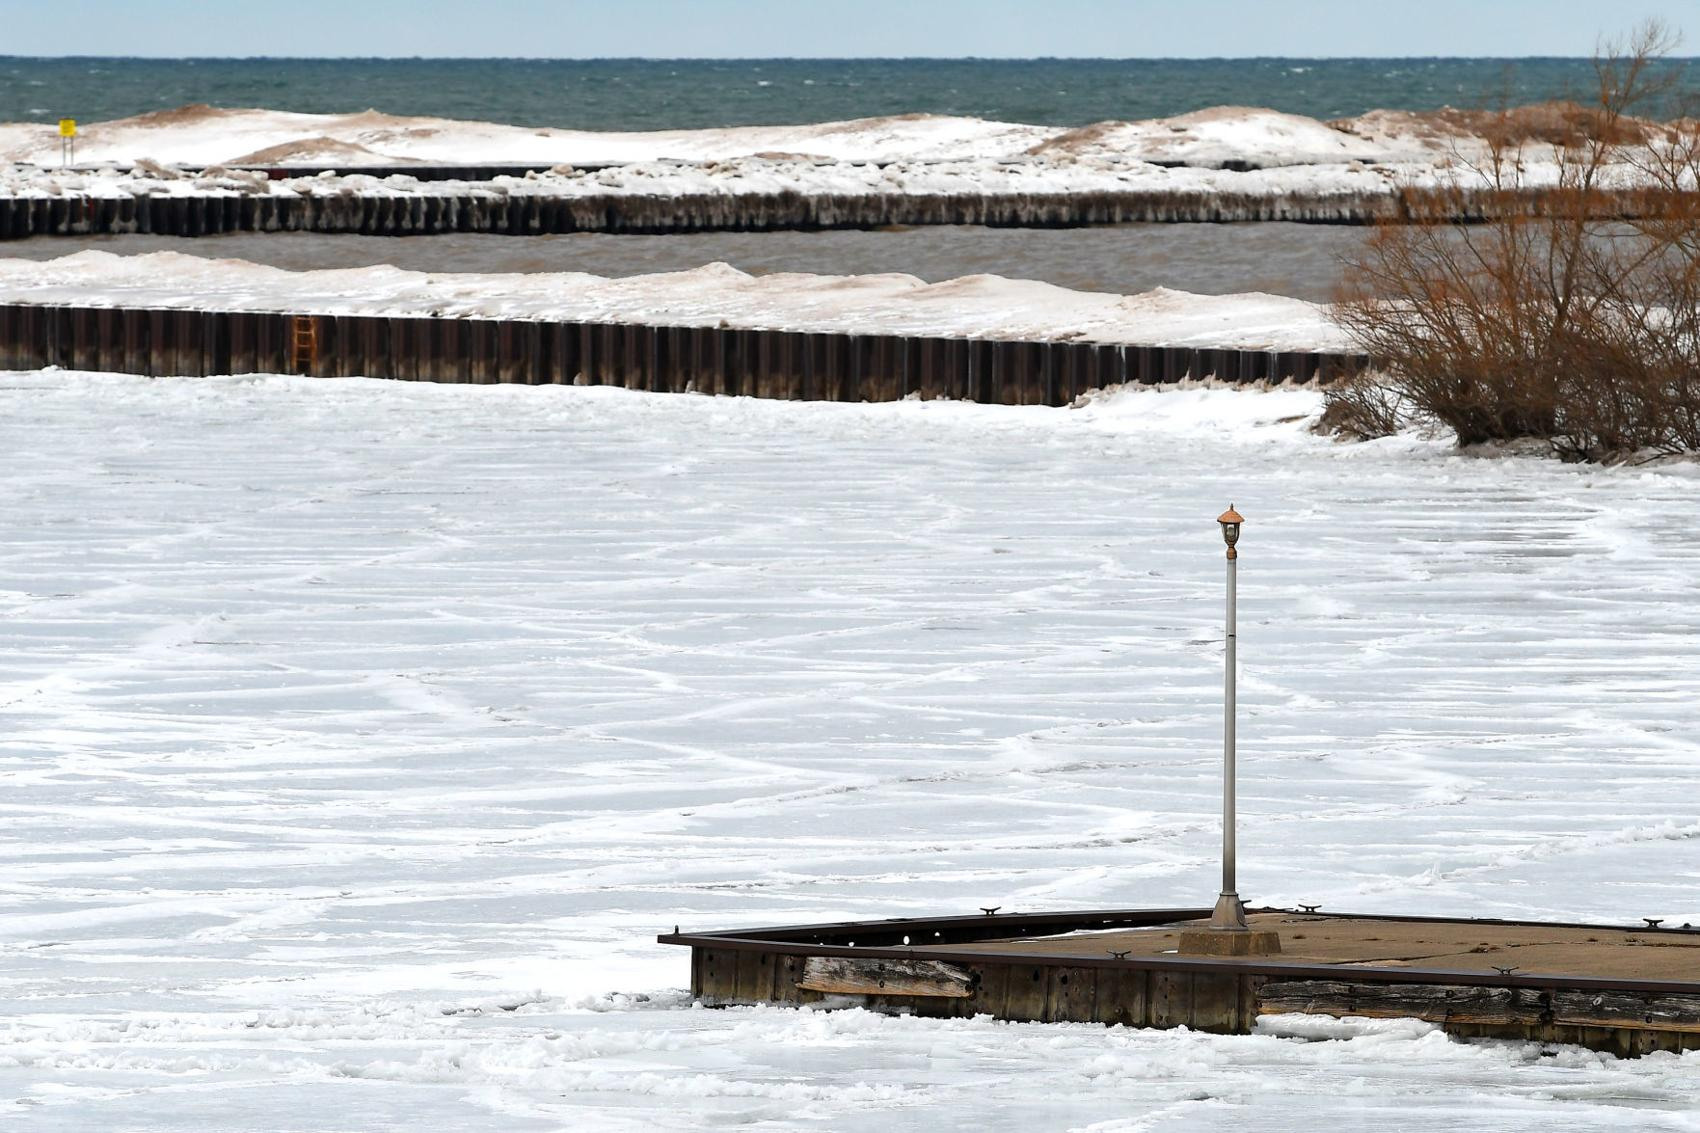 Army Corps of Engineers assesses Fair Haven pier damage, plans repairs